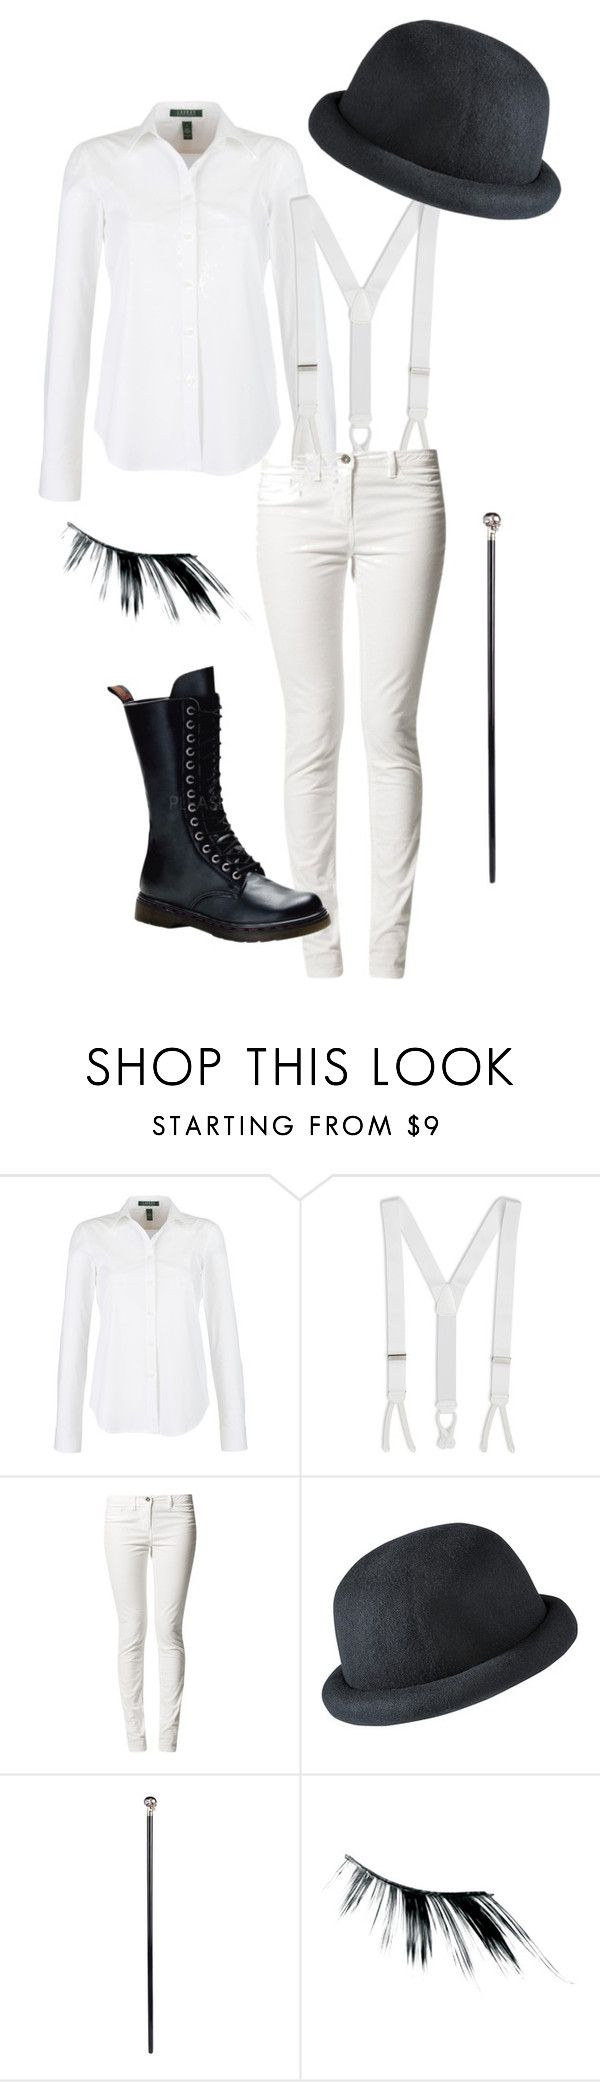 """DIY Clockwork Orange costume"" by youreinbrookelynn ❤ liked on Polyvore featuring Lauren Ralph Lauren, Brooks Brothers, Xhilaration, Alexander McQueen and Japonesque"